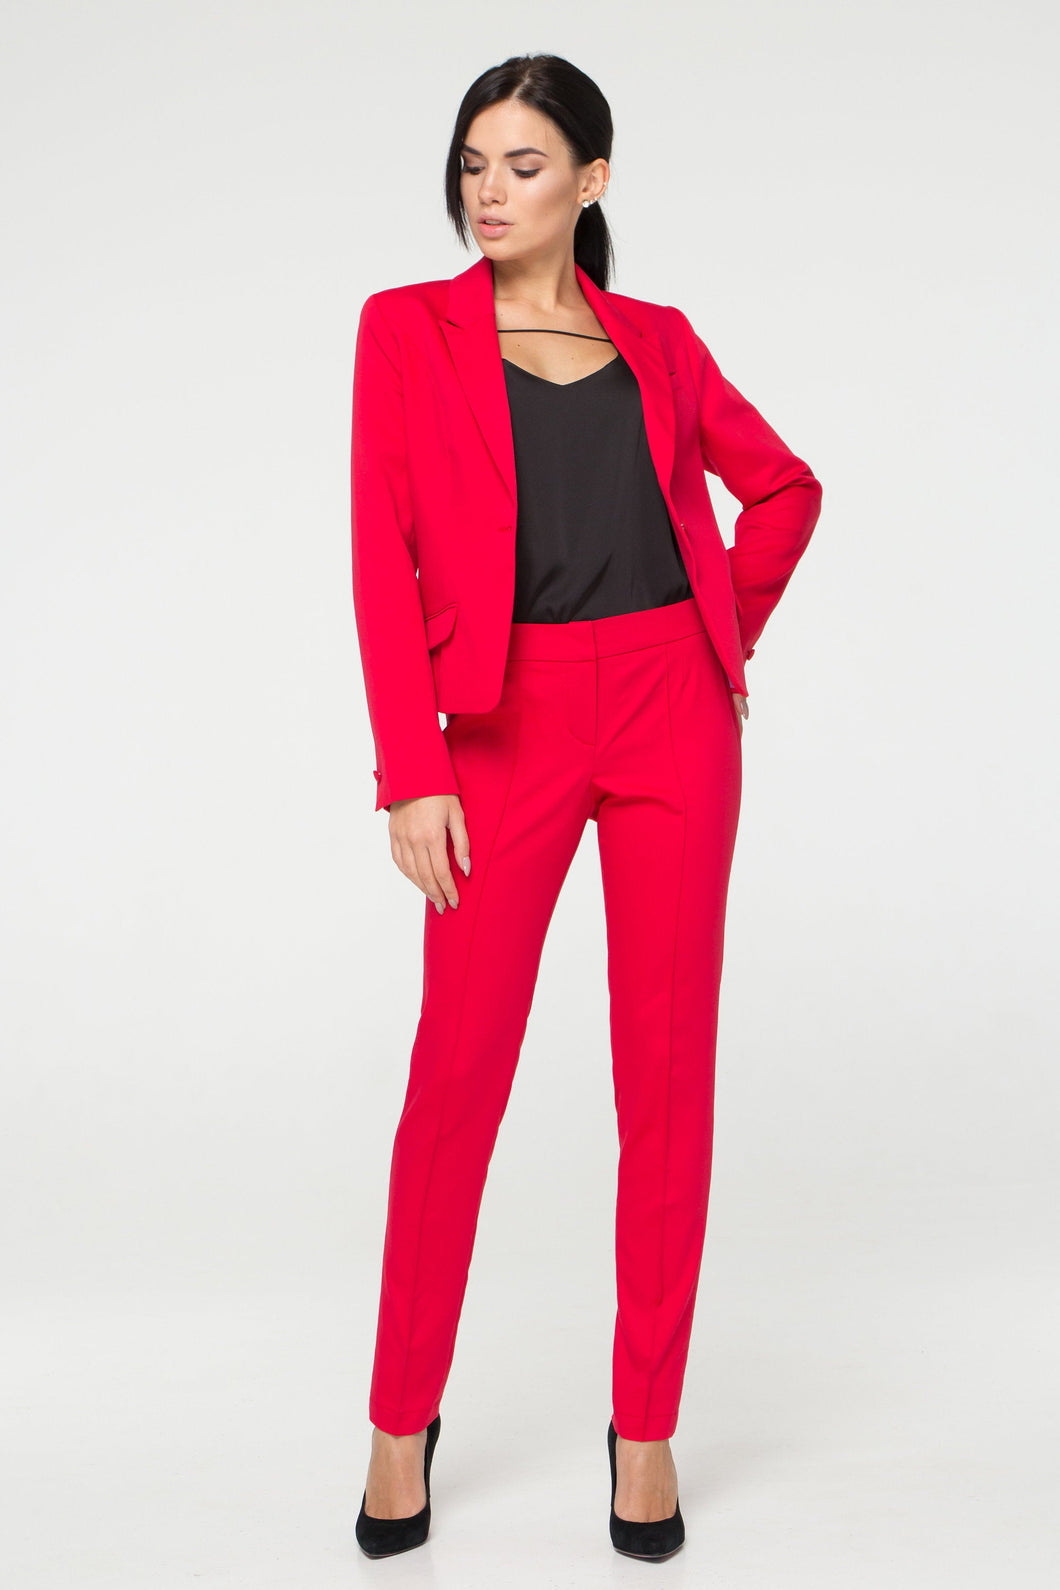 Red pant suit women